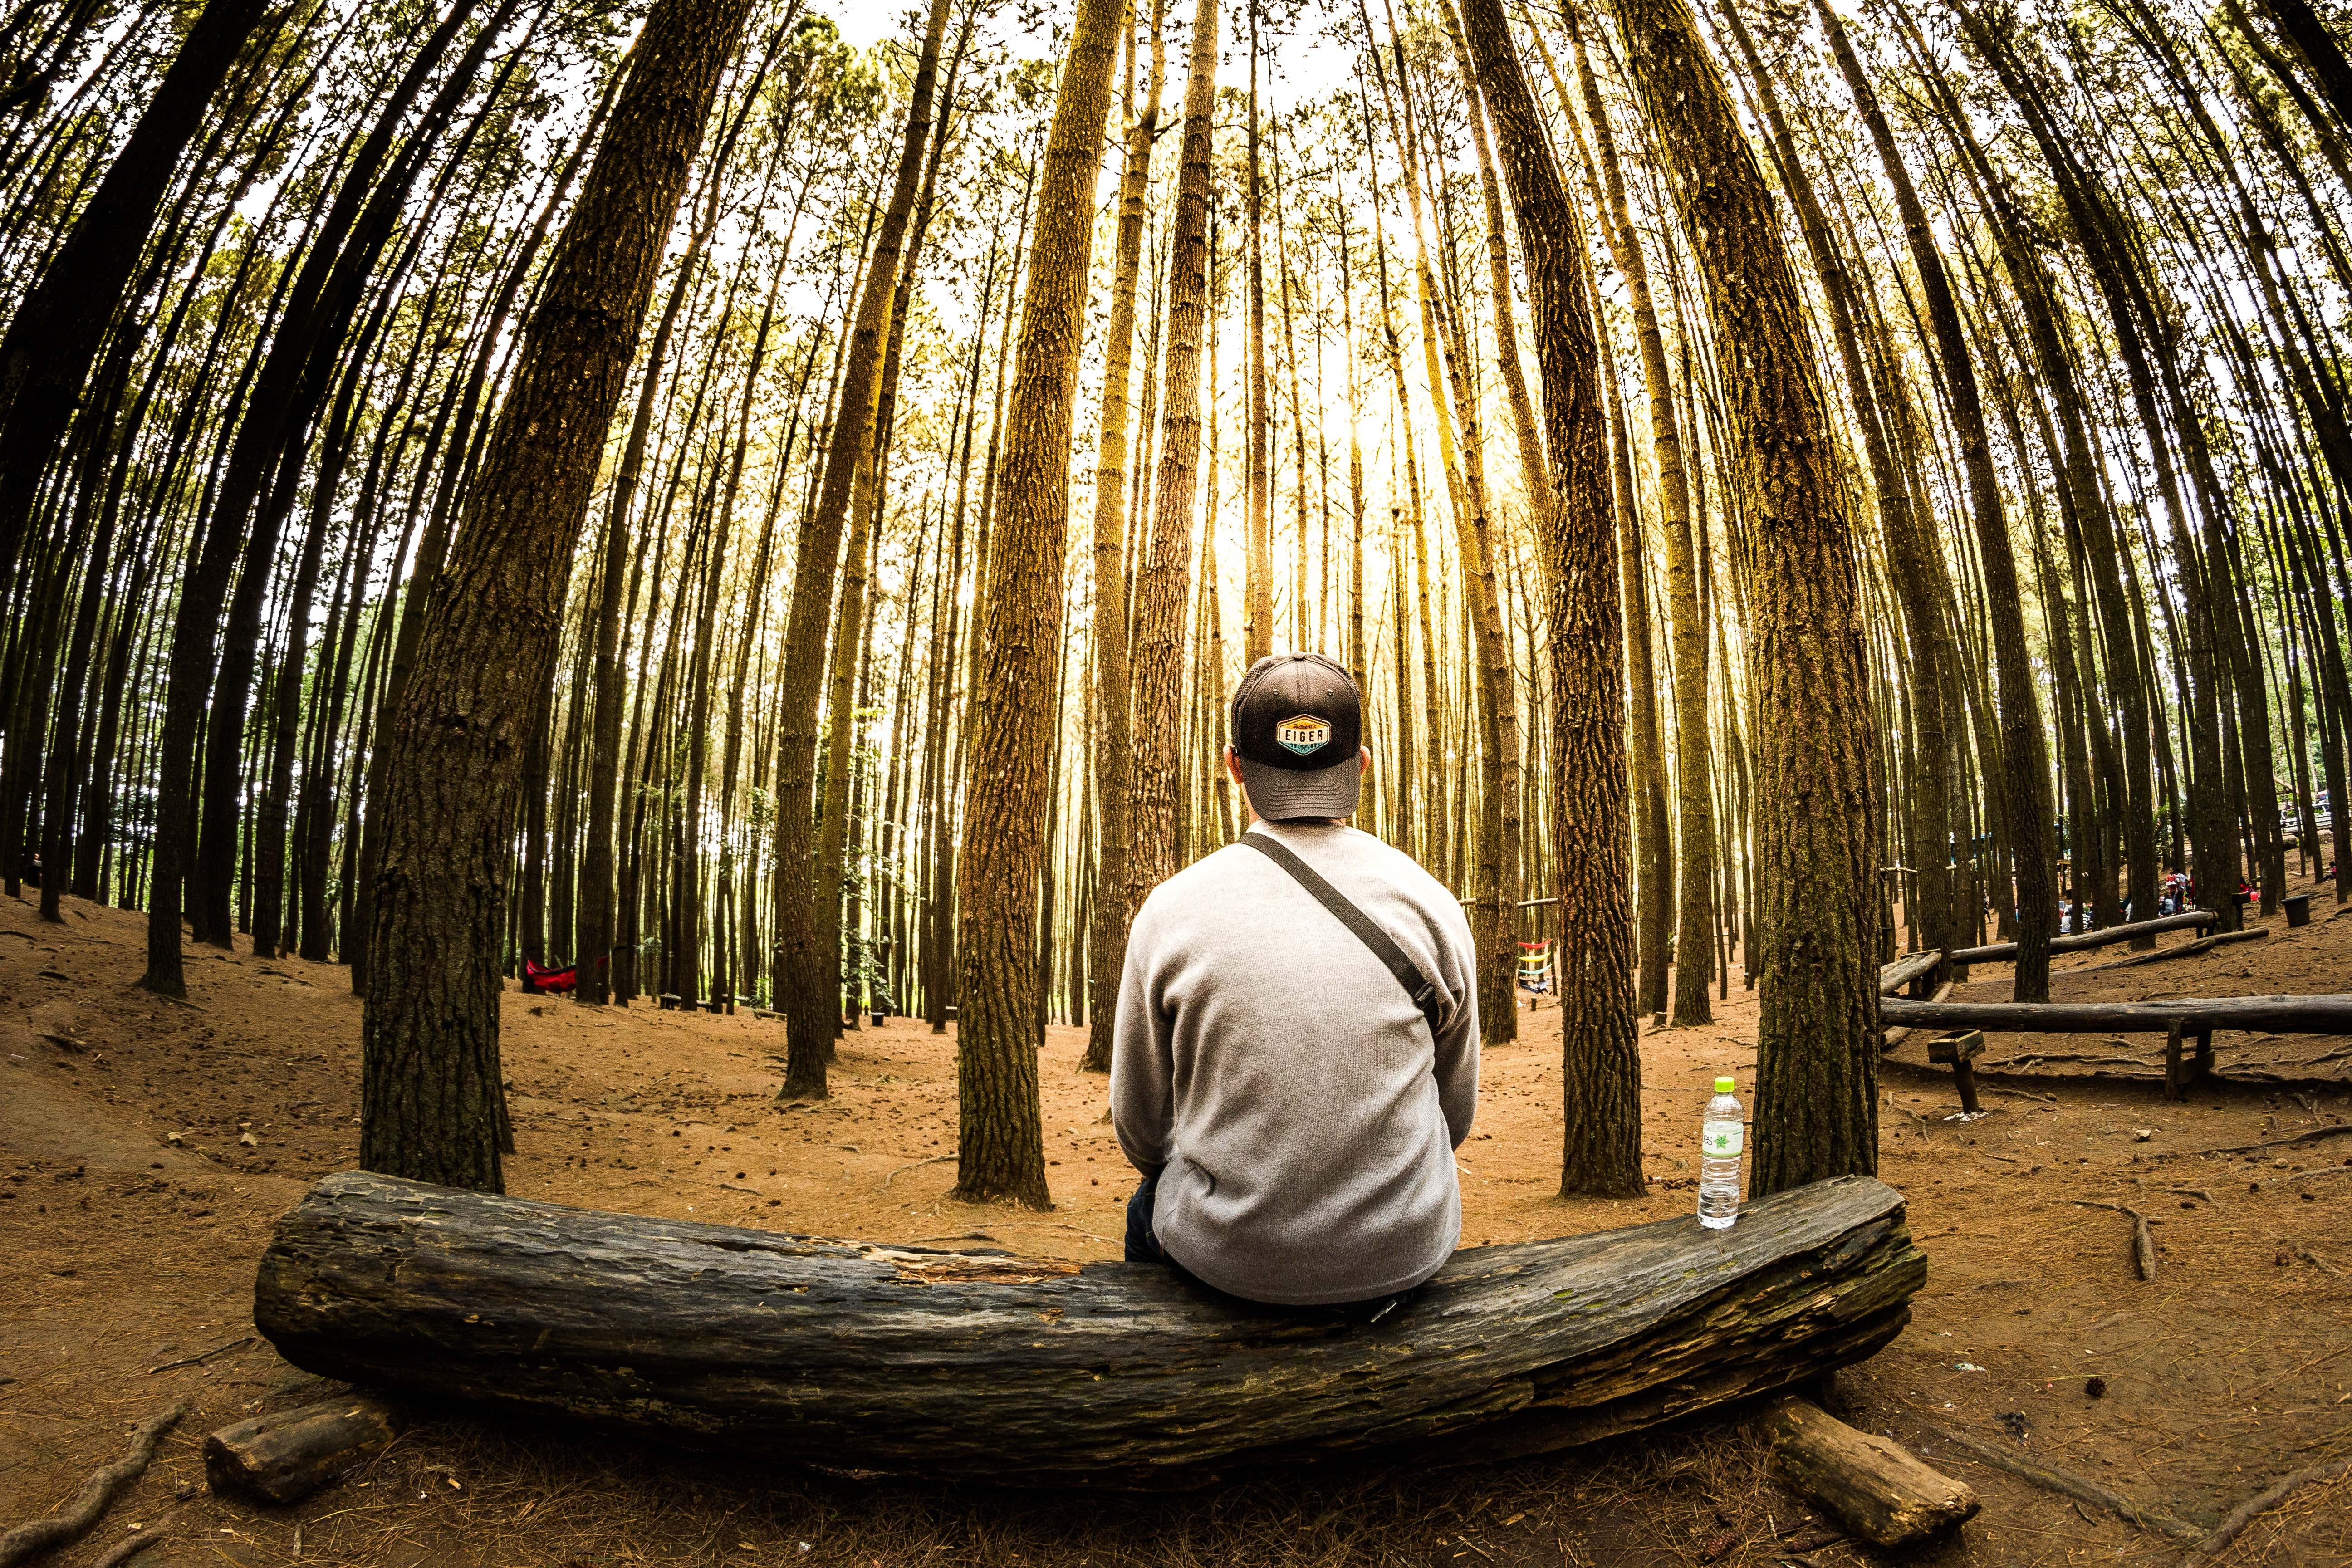 Man Siting on Log in Center of Forest Panoramic Photo, Forest, Man, Outdoors, Person, HQ Photo